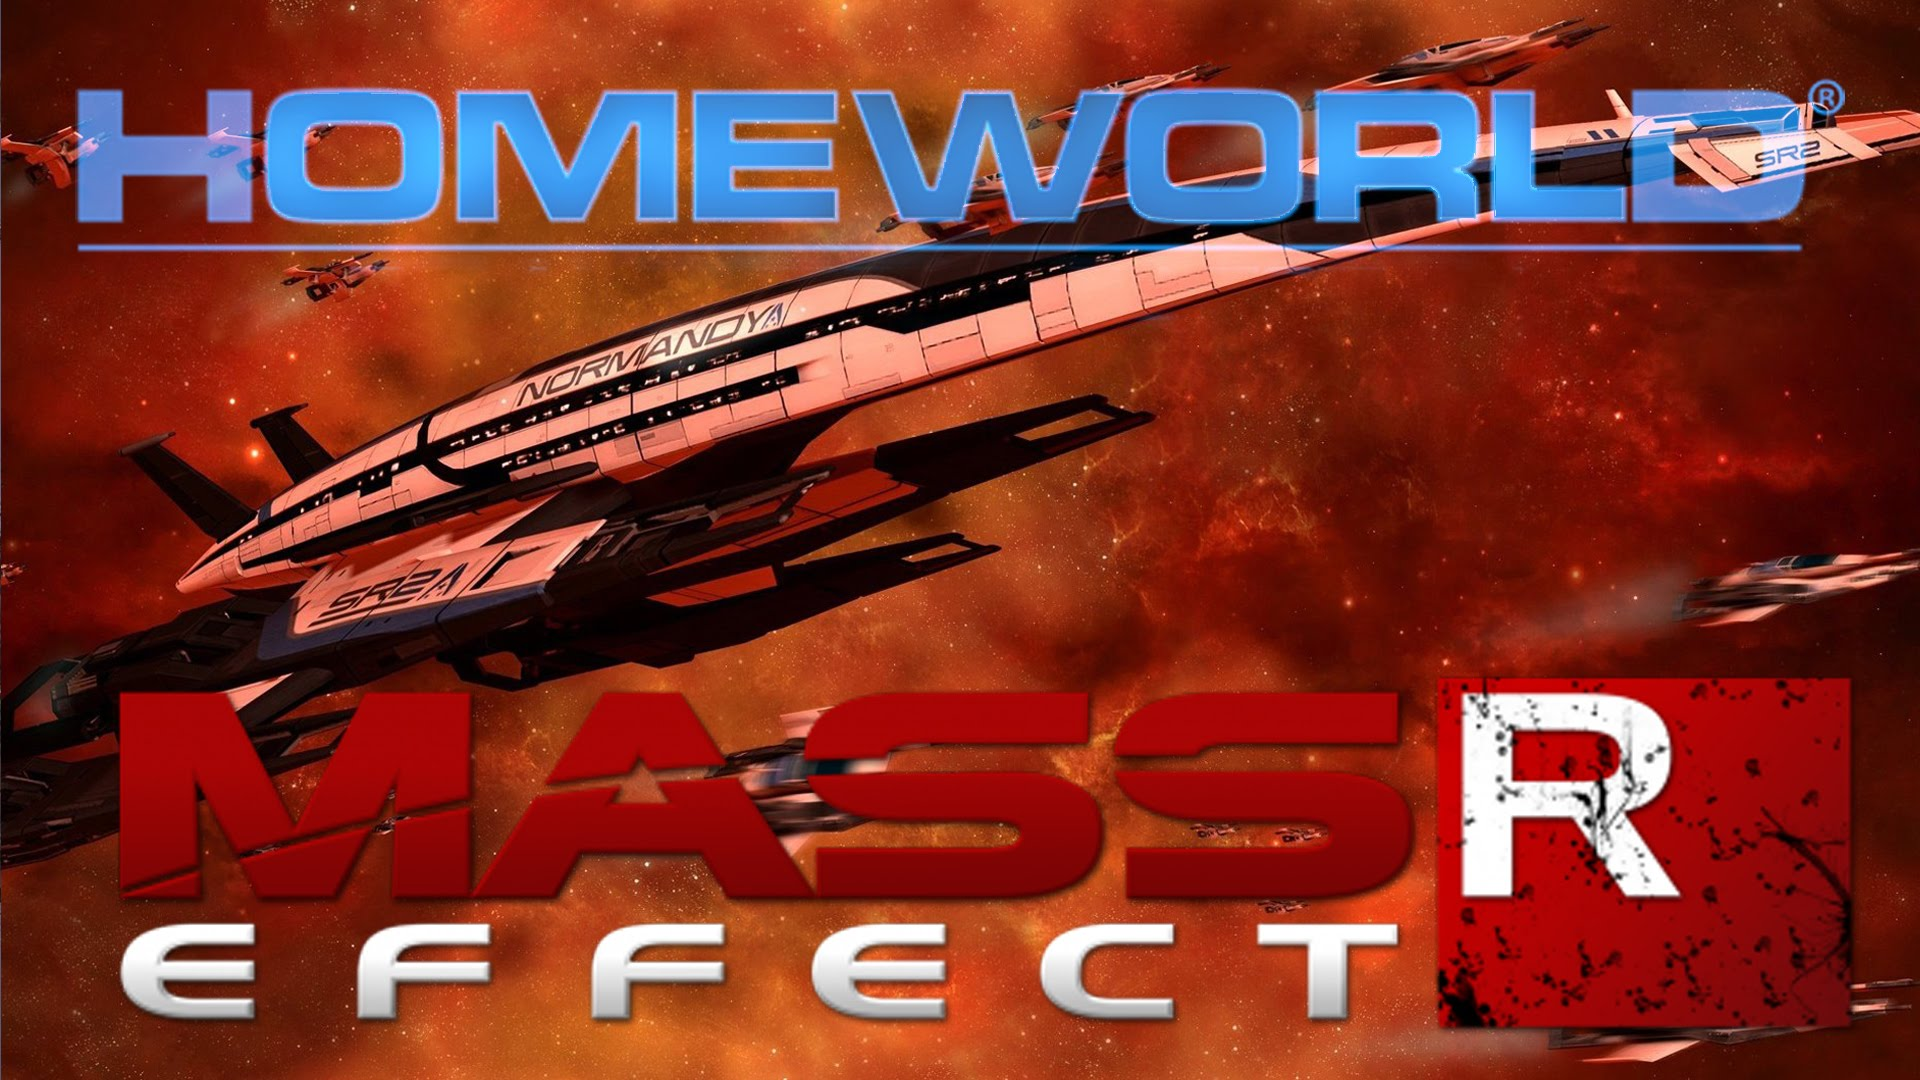 Mass Effect Reborn - Fighting the Reapers (Homeworld Remastered Workshop) Classic Homeworld 2 Mod